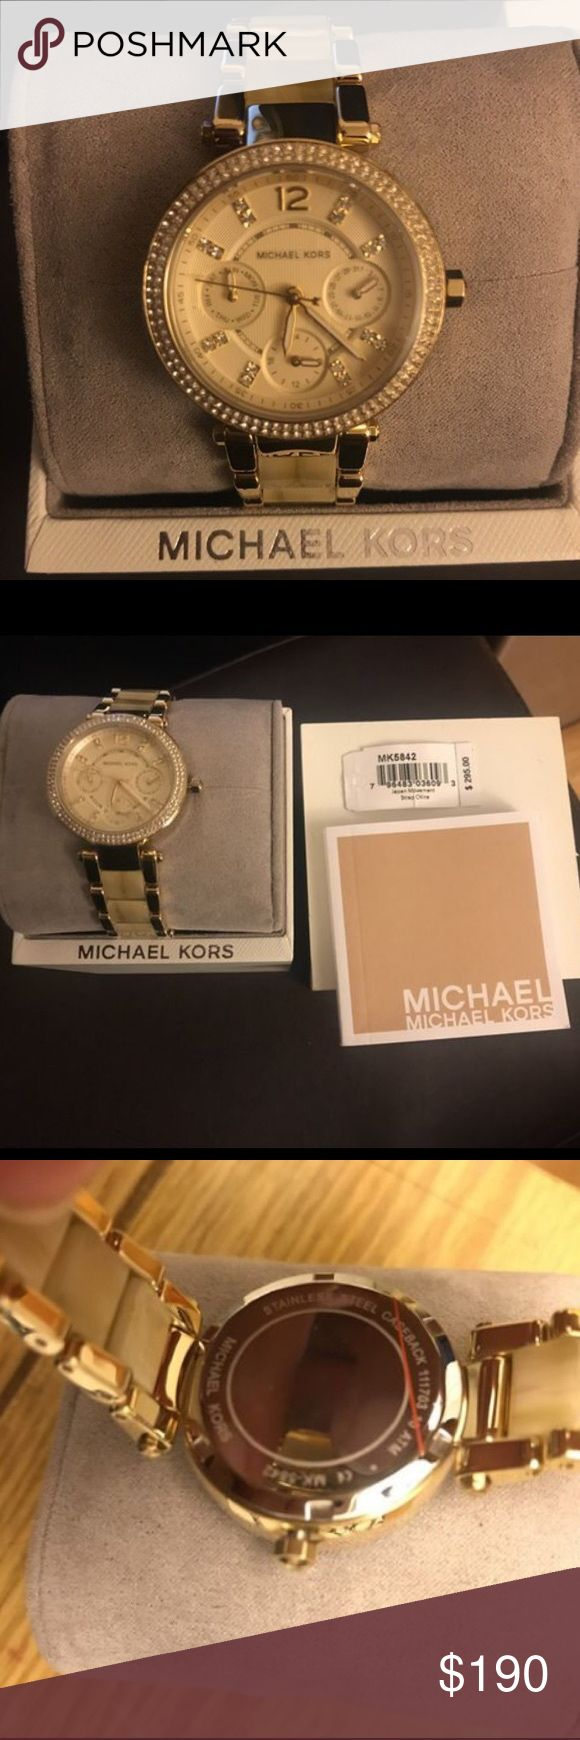 Brand new Michael Kors watch Brand new in original box. Was supposed to give it as a gift so I cut/detached the price from the tag as seen on the last photo. Michael Kors Accessories Watches